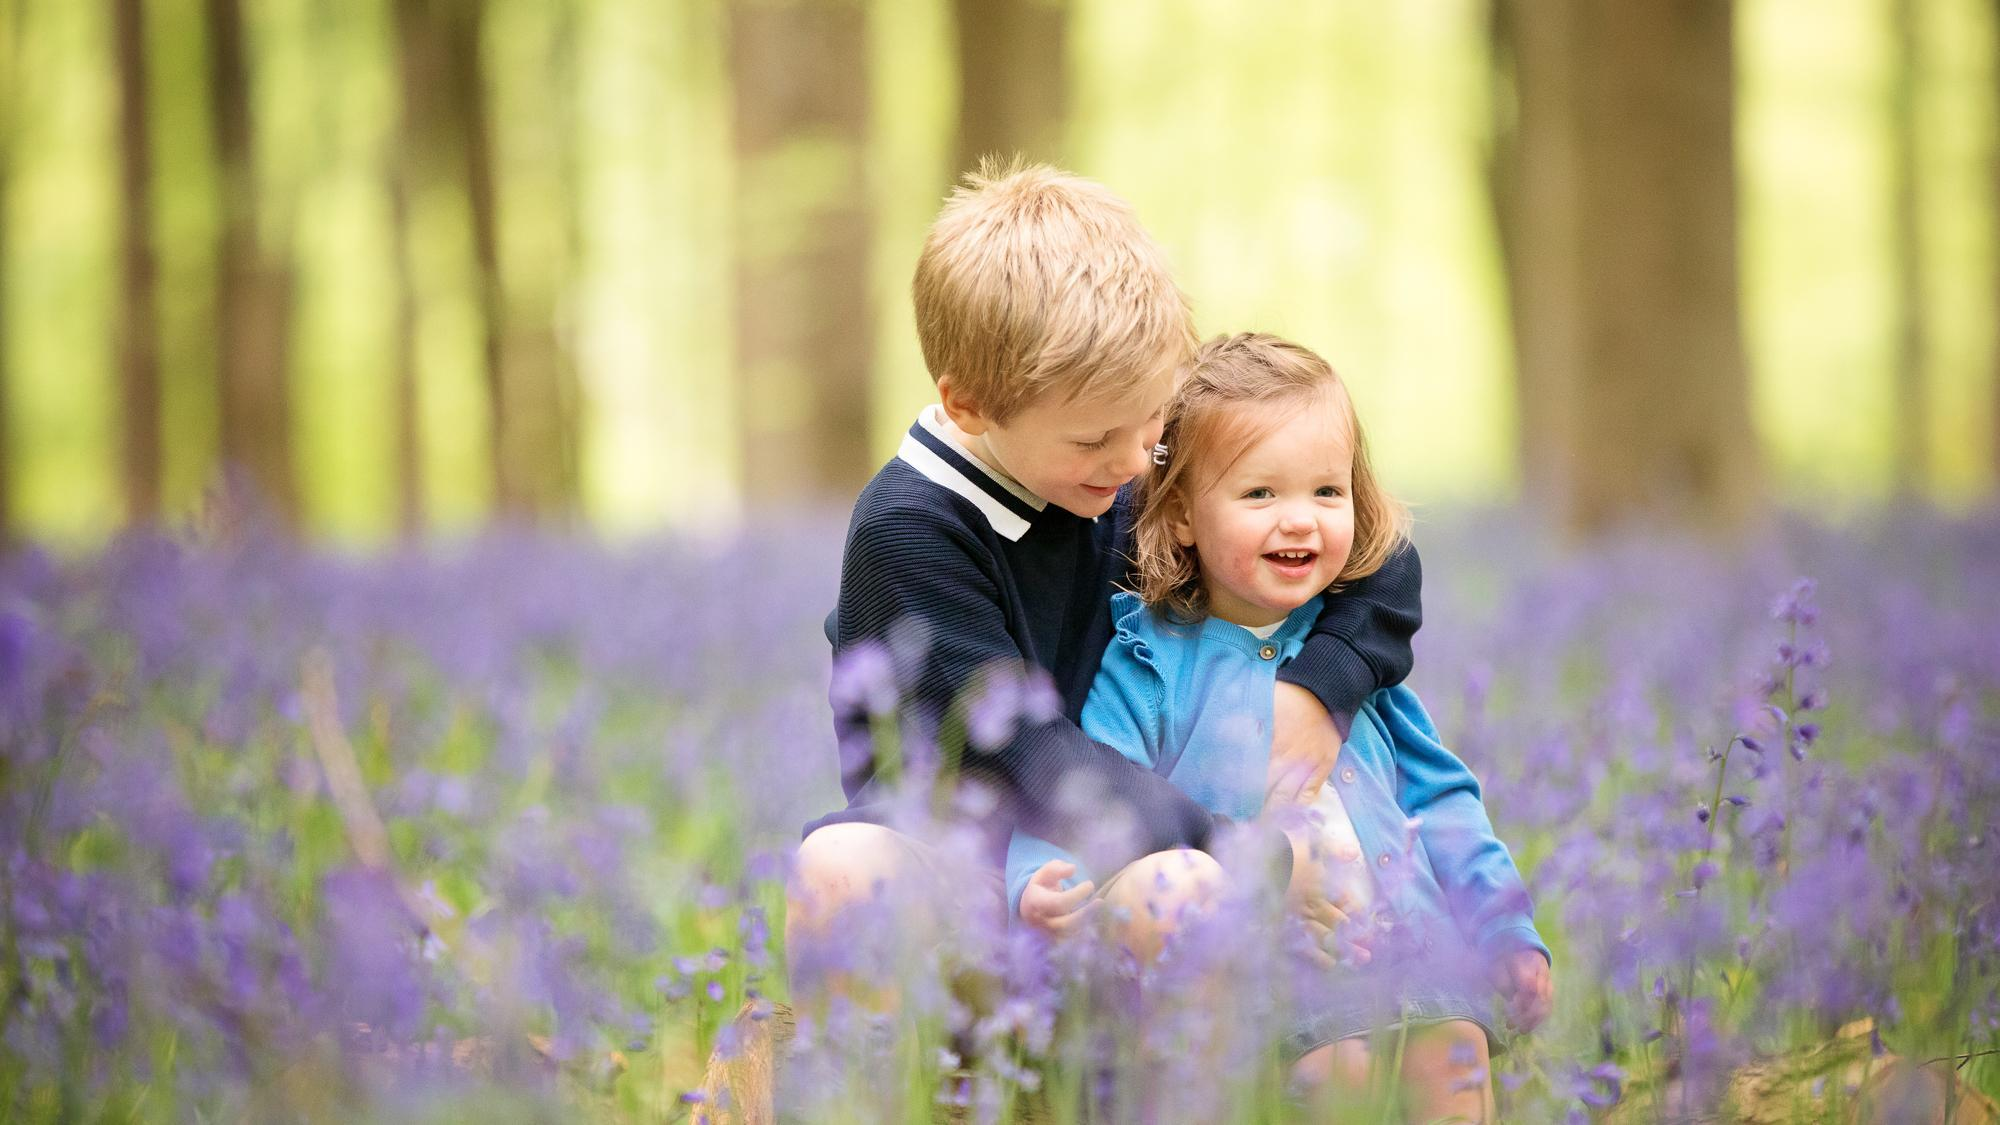 family photographer fleet, photographer fleet, family photographer fleet hampshire, photographer fleet hampshire